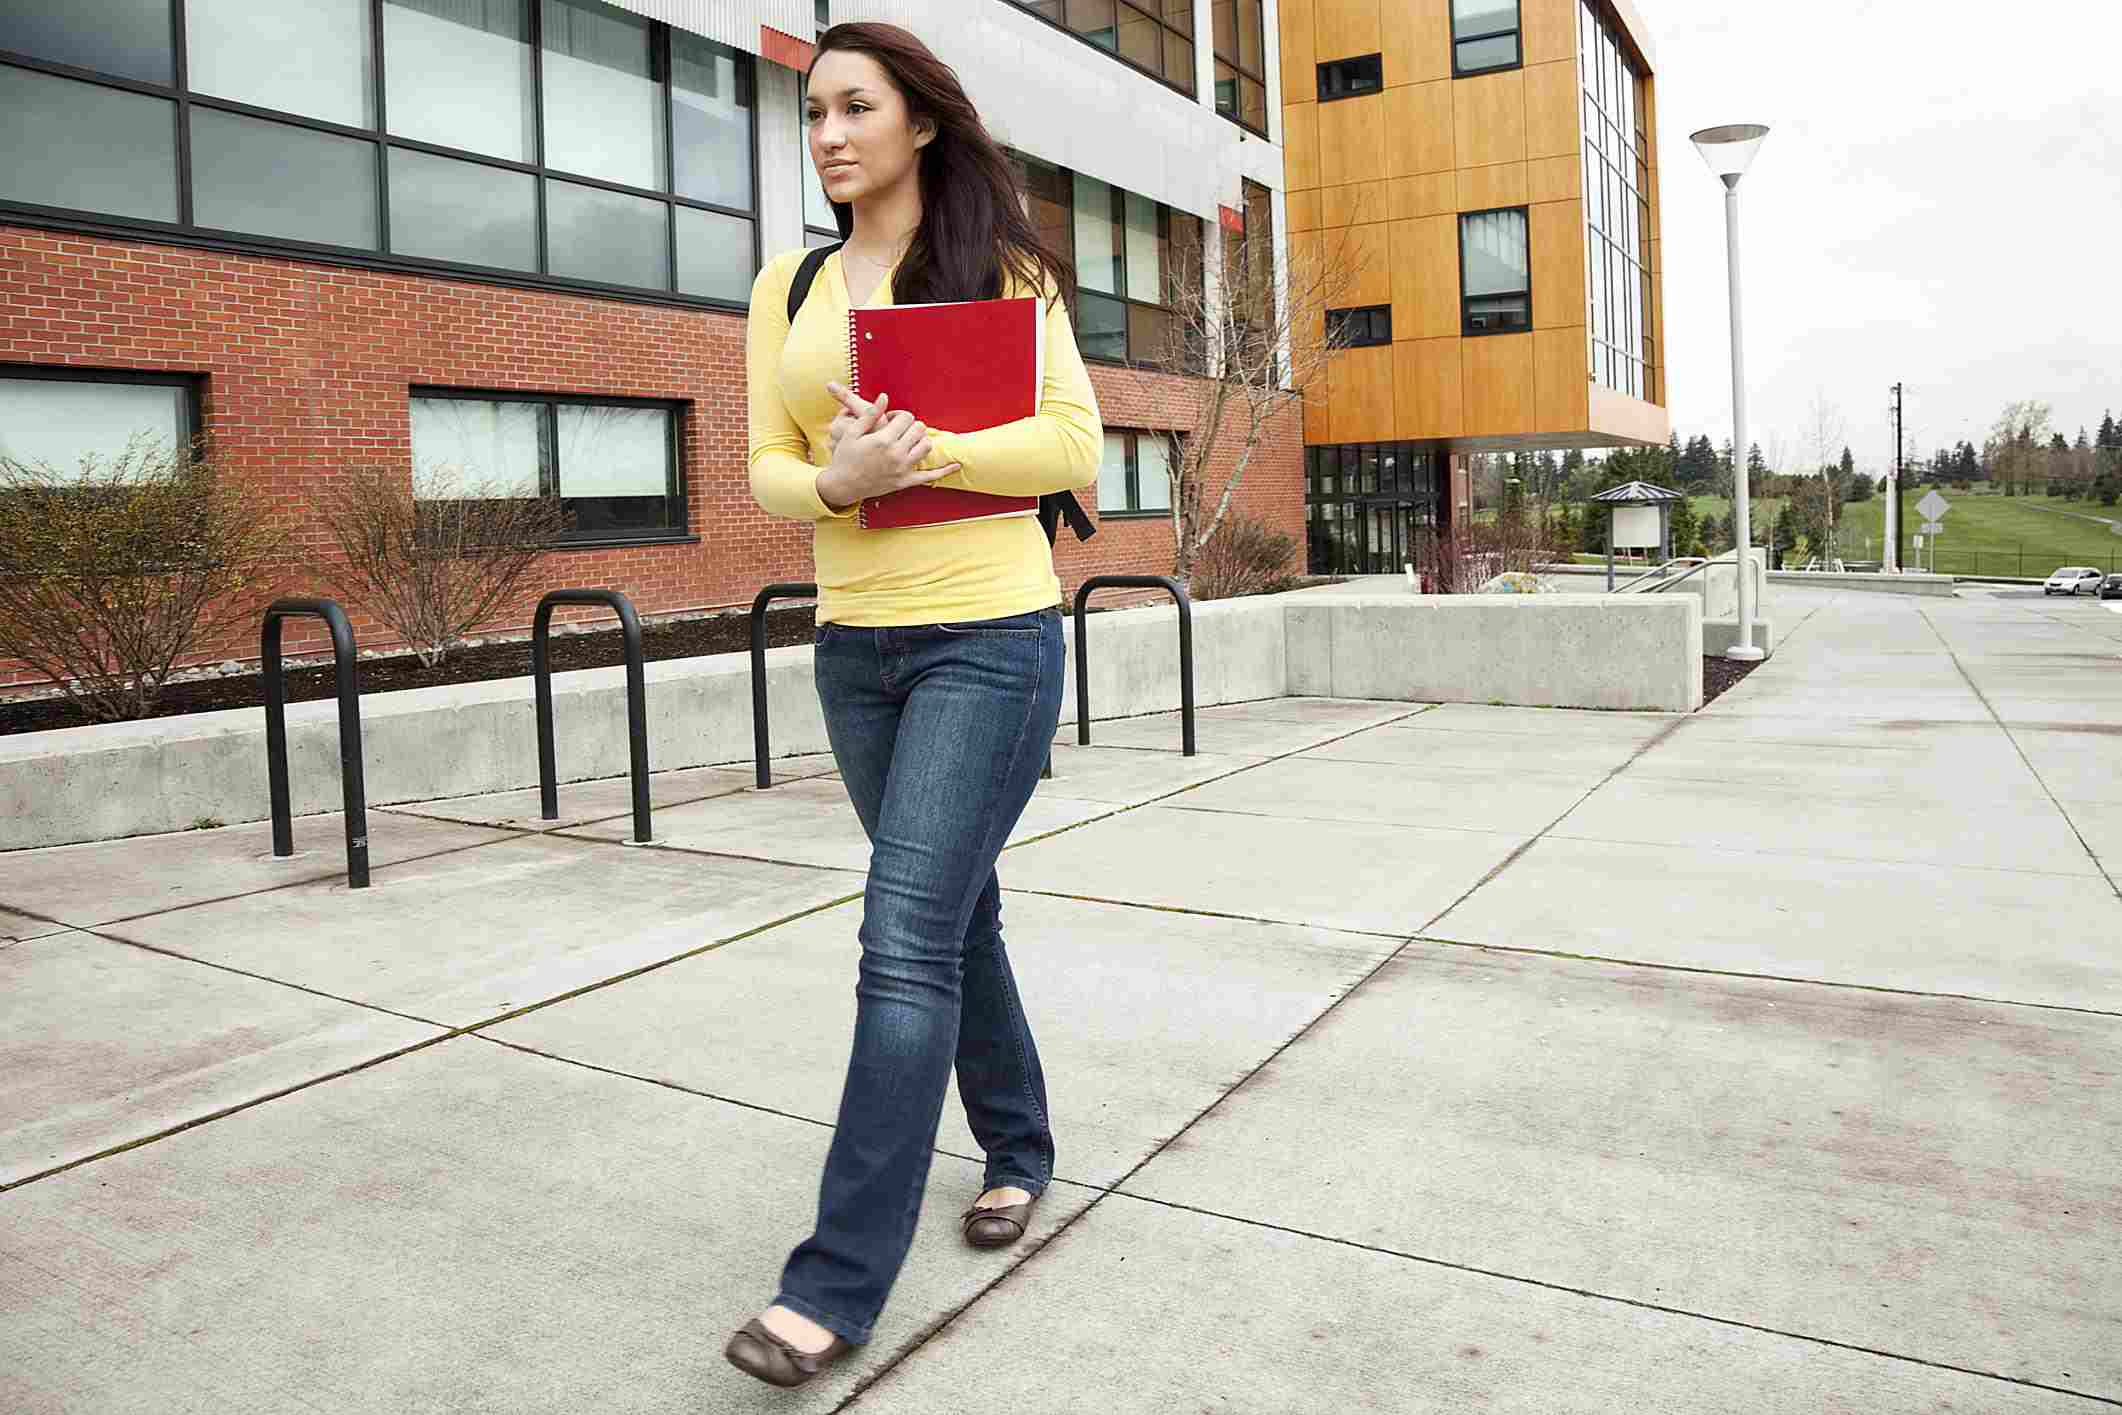 Student-Walking-by-Justin-Horrocks-E-Plus-Getty-Images-182774638.jpg